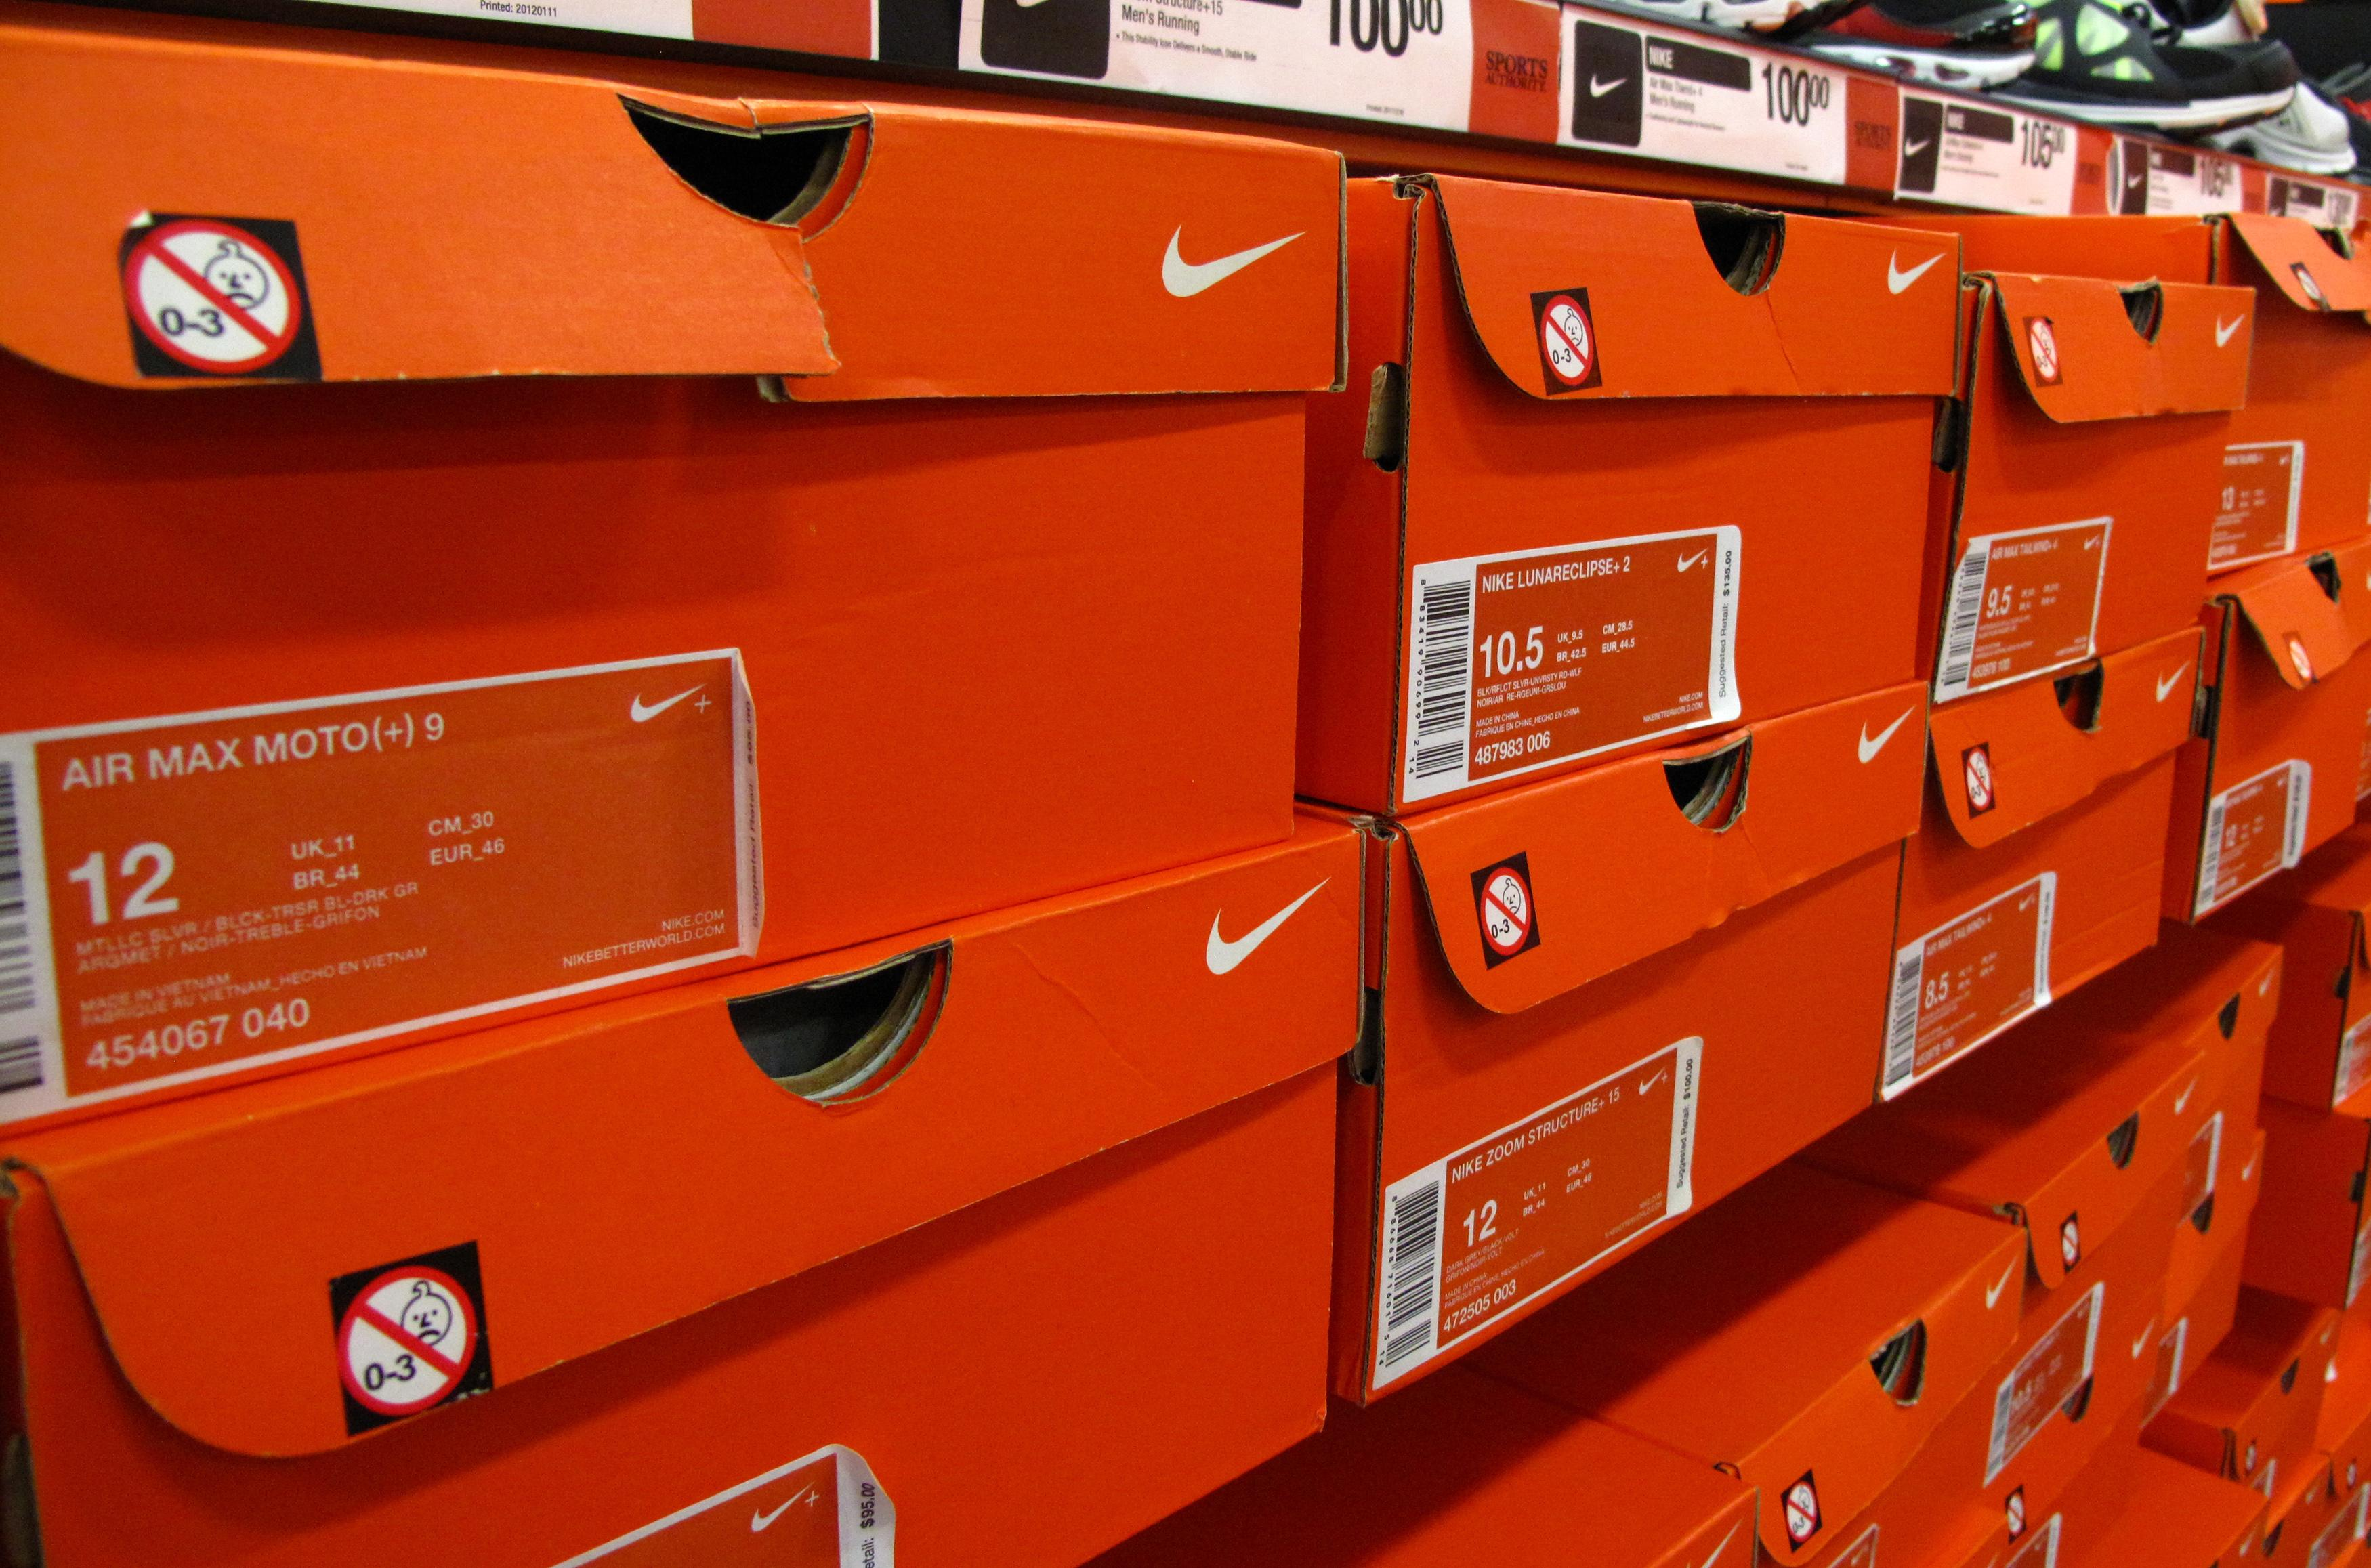 Nike to focus on DTC business, pulls Amazon partnership